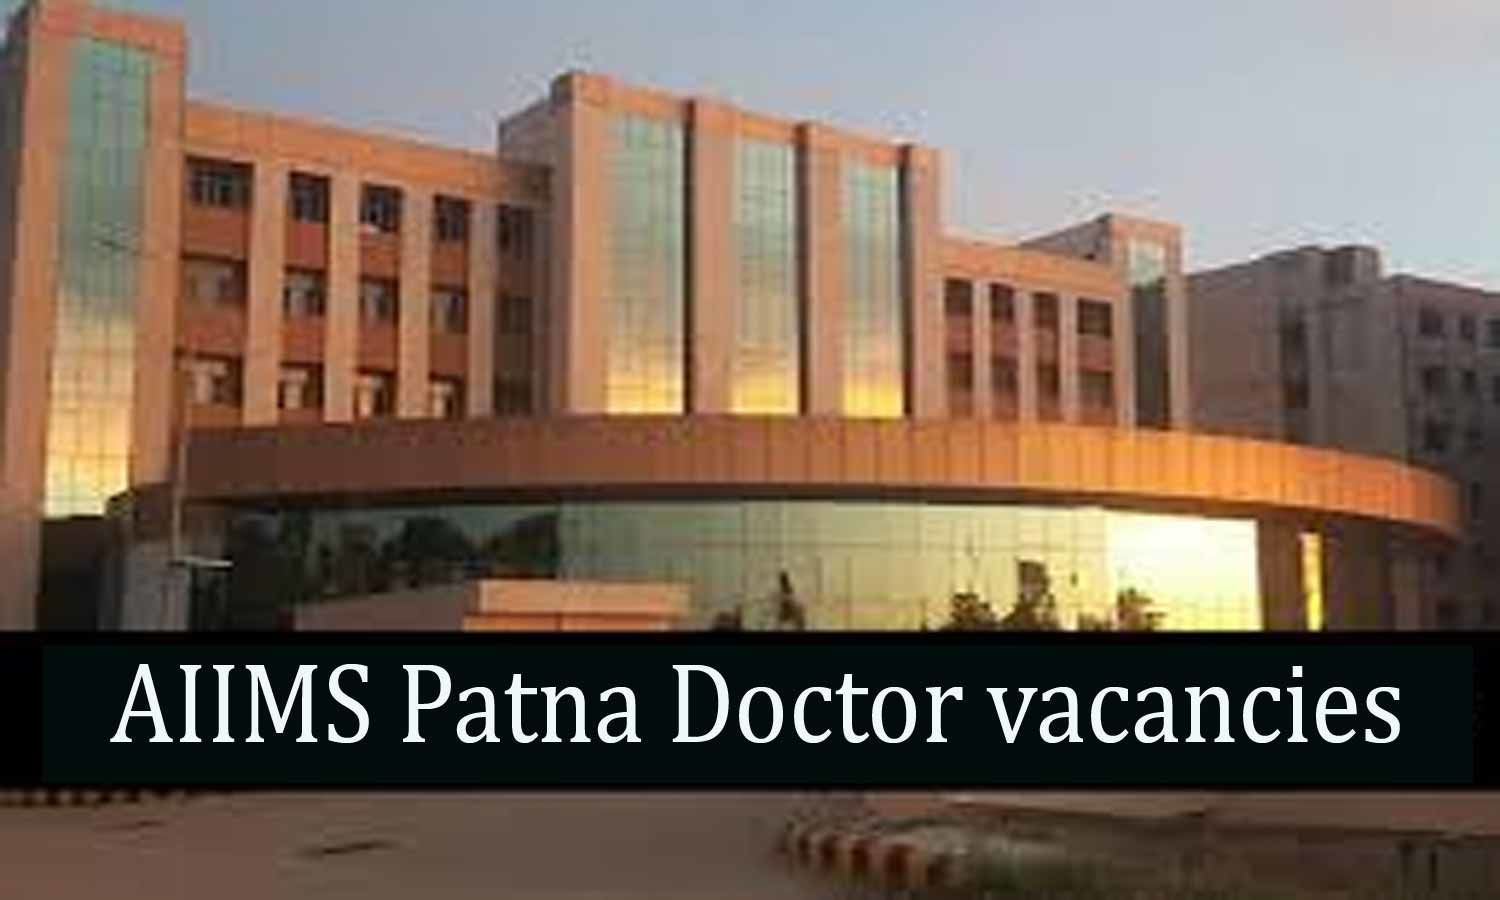 Walk-In-Interview: AIIMS Patna releases Junior Resident Vacancies for Surgical Oncology Dept